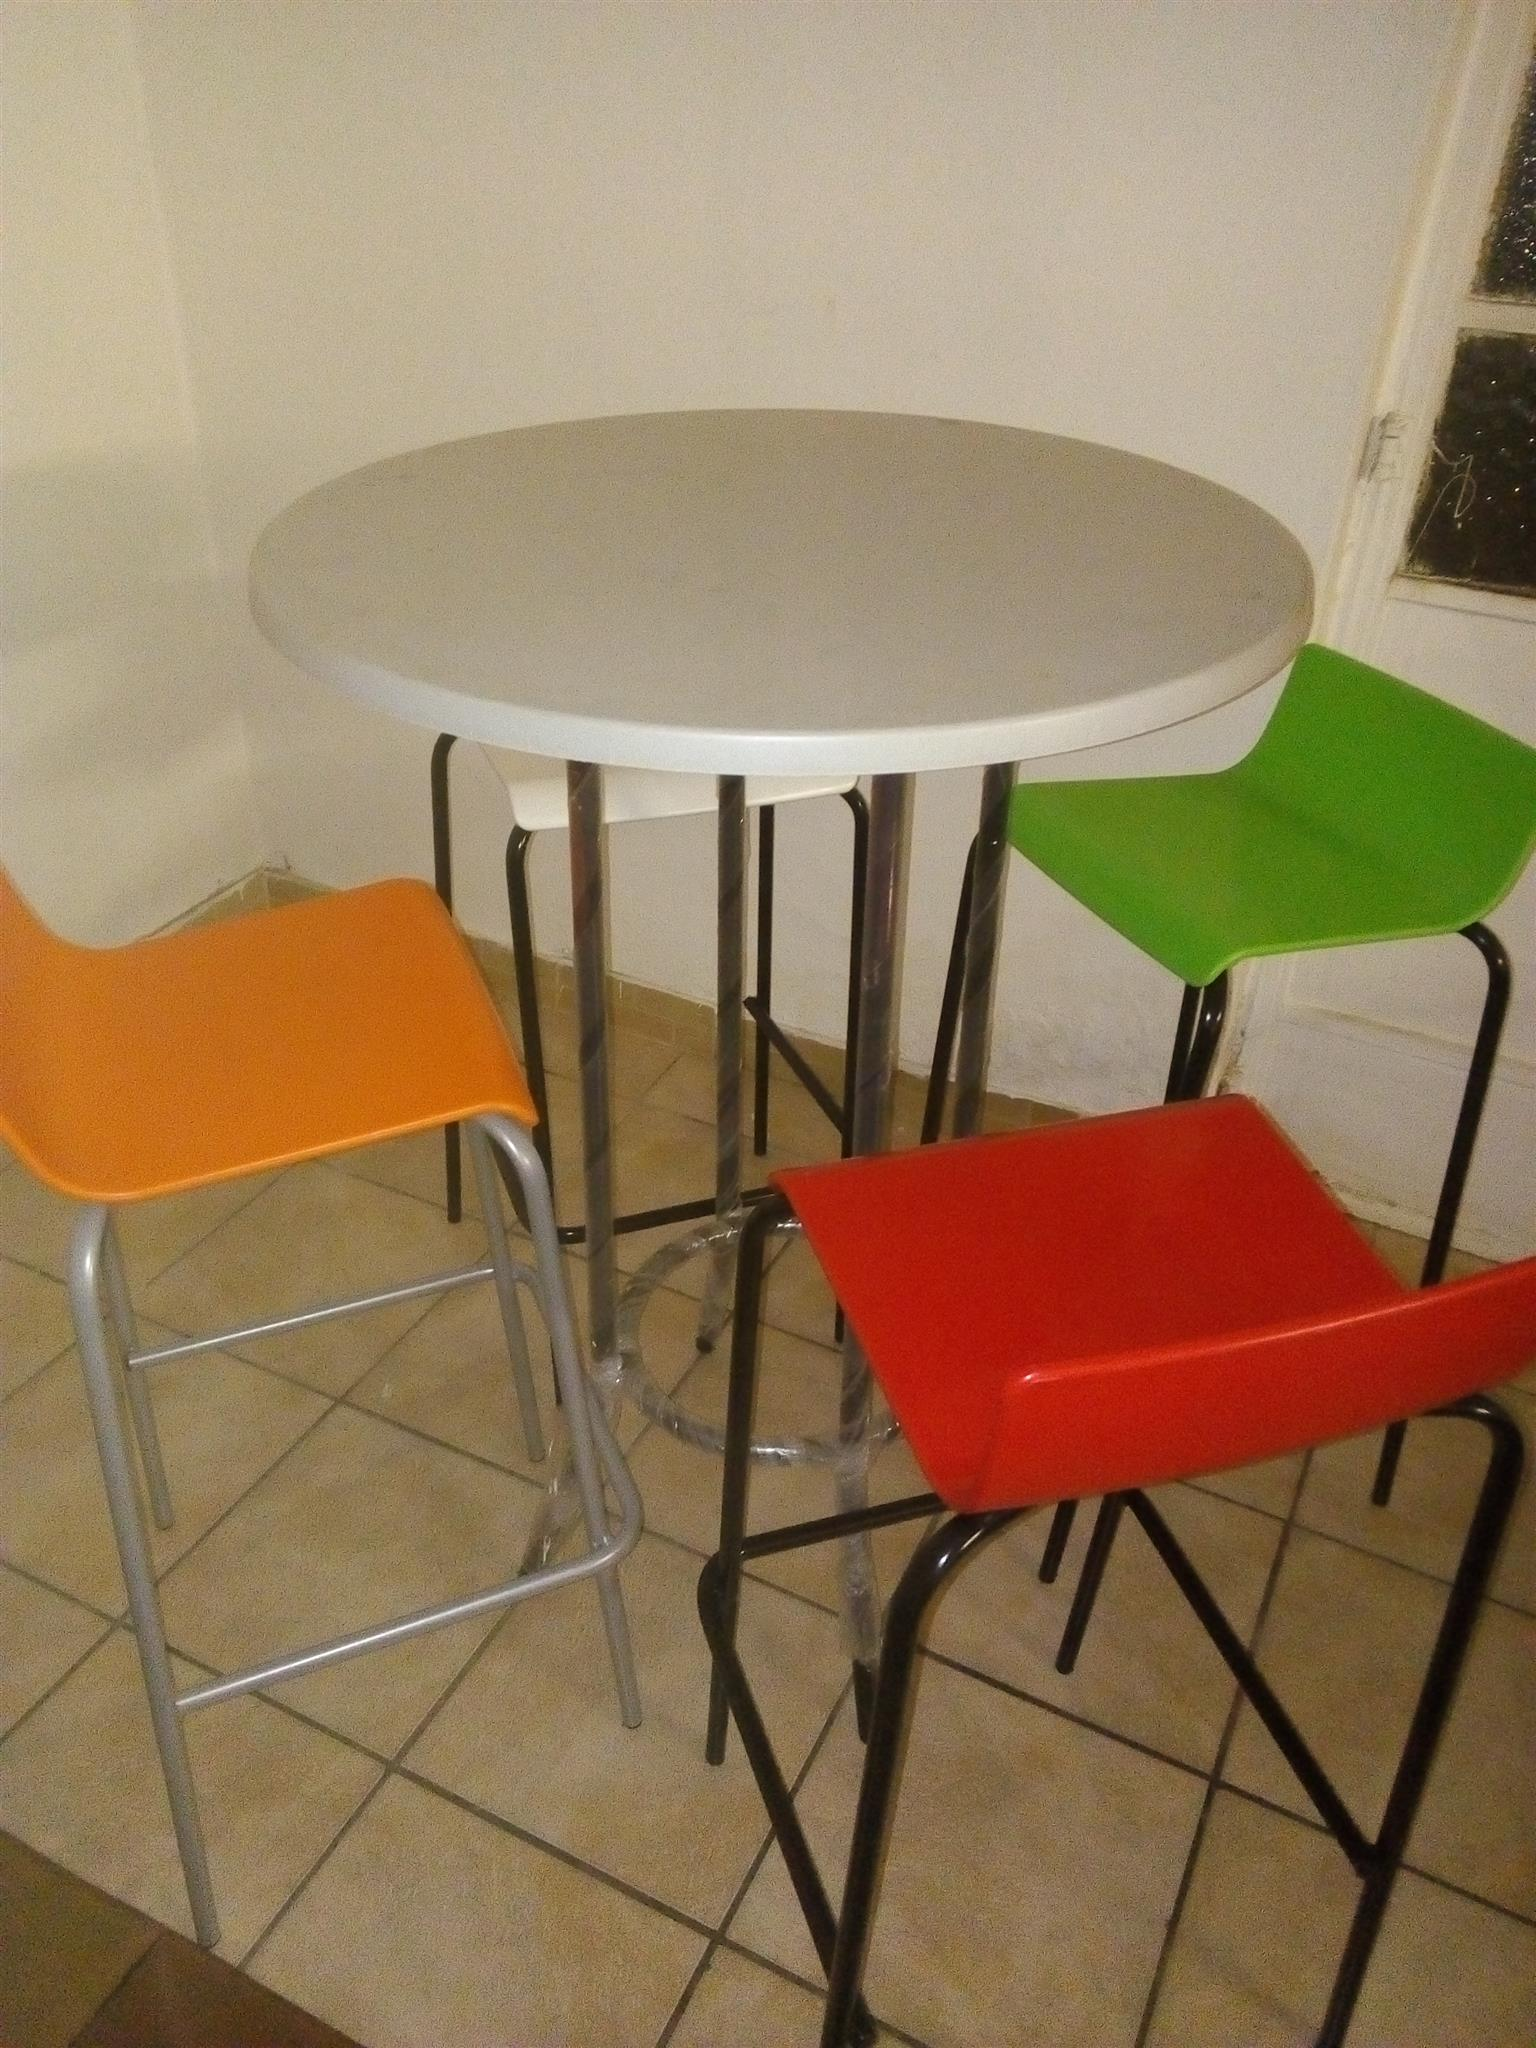 BAR chairs and table SET